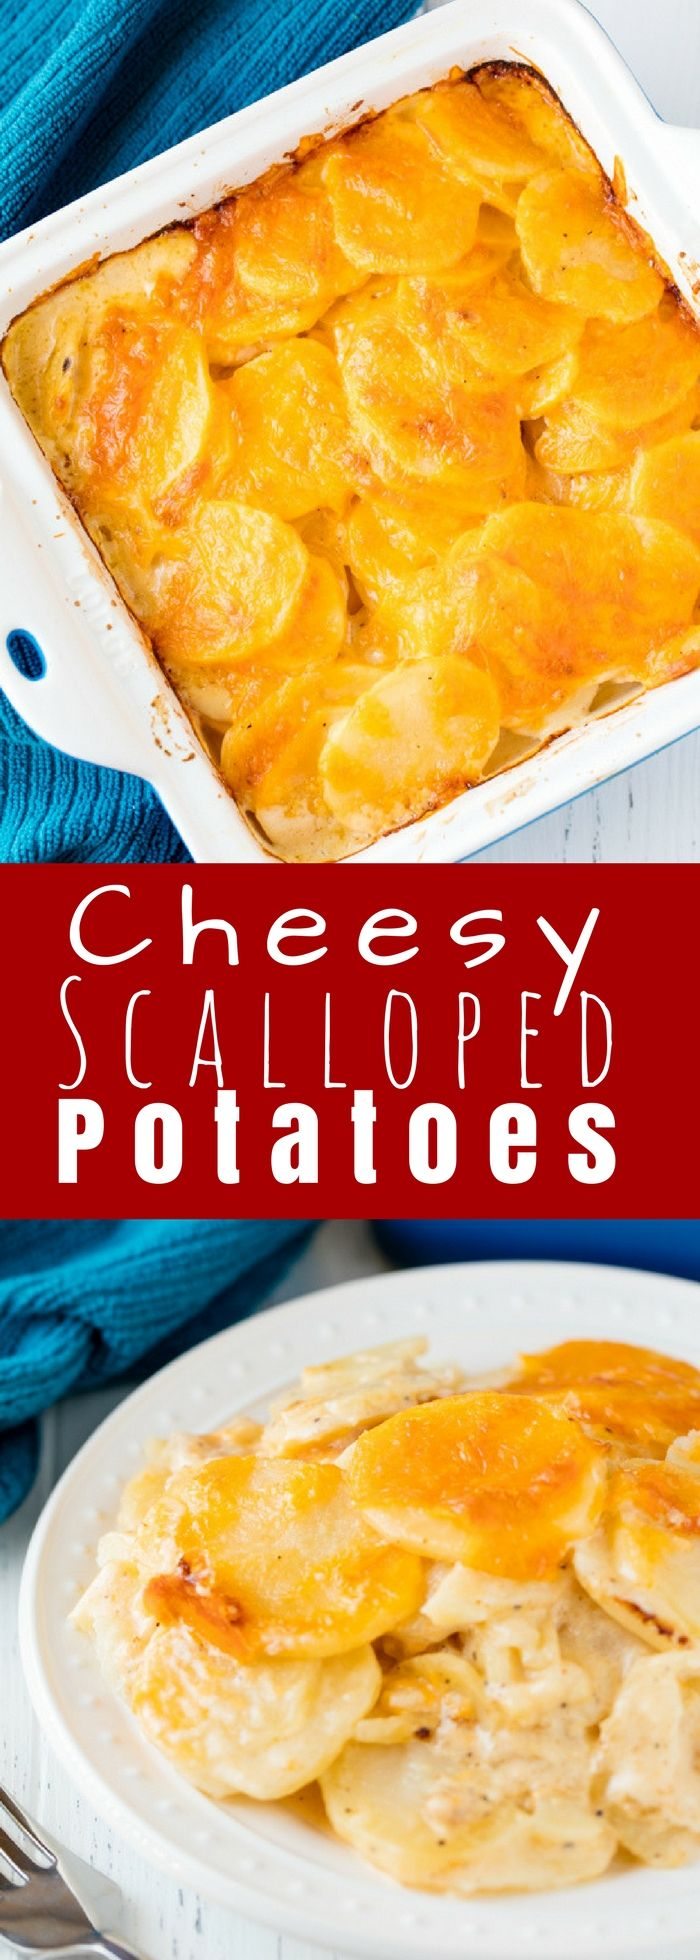 The Best Scalloped Potatoes are easier to make than you might think! This scalloped potato recipe has a classic creamy sauce and is topped off with extra cheese for cheesy scalloped potatoes that are total comfort food.